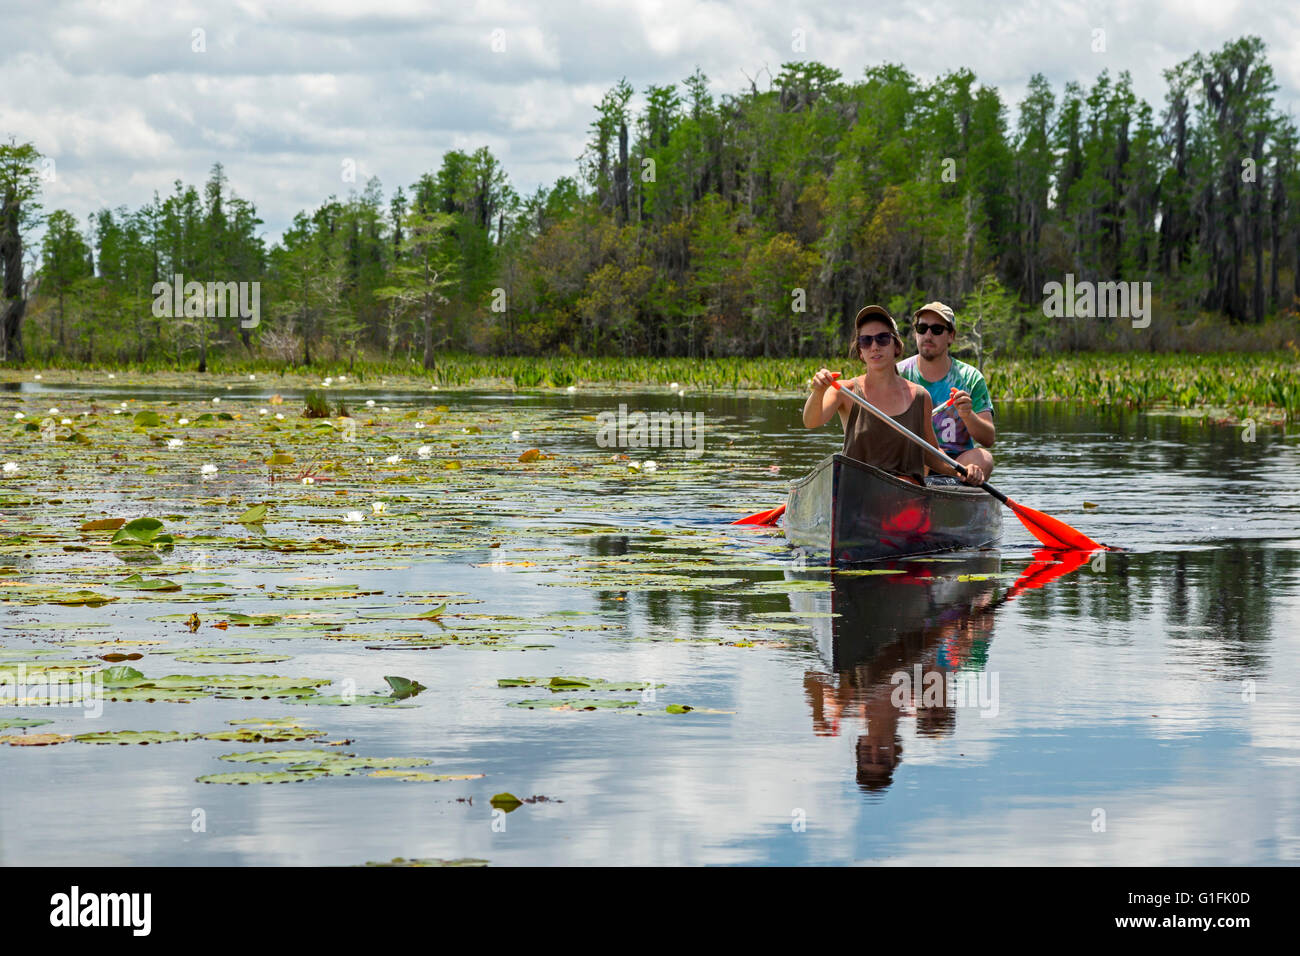 Folkston, Georgia - People canoeing in the Okefenokee National Wildlife Refuge. - Stock Image